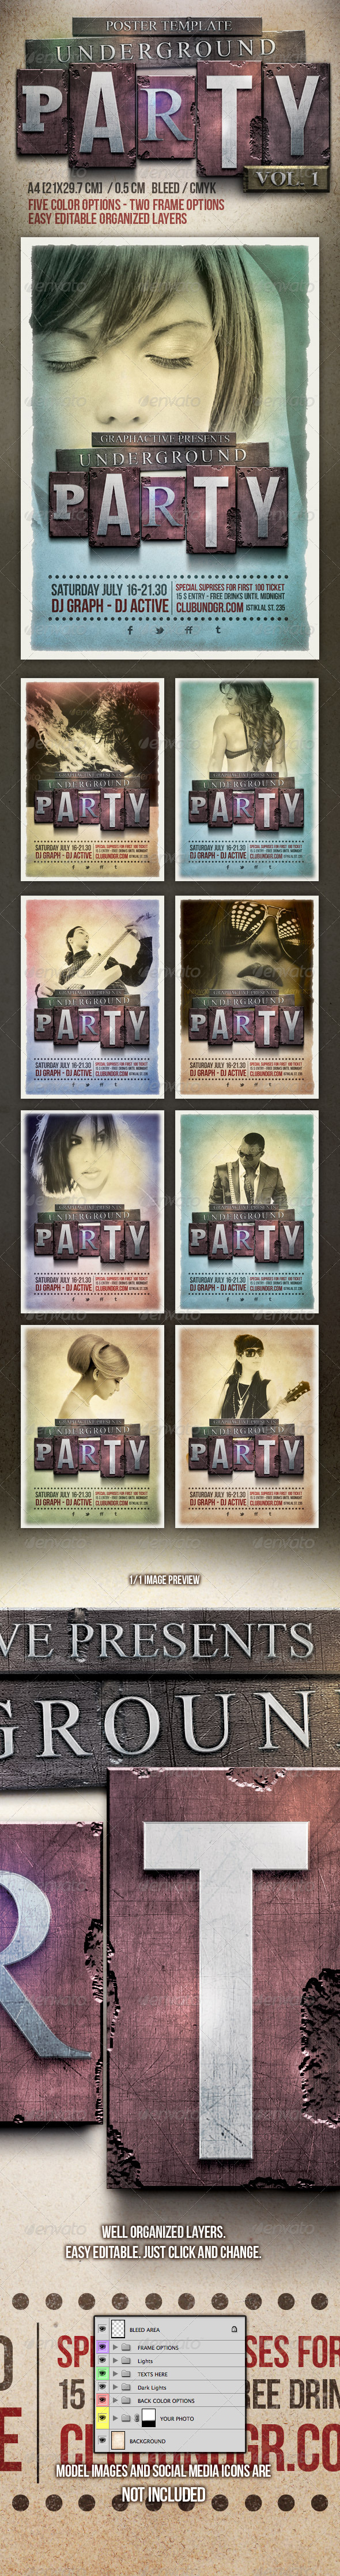 Underground Party Poster Design Template - Clubs & Parties Events